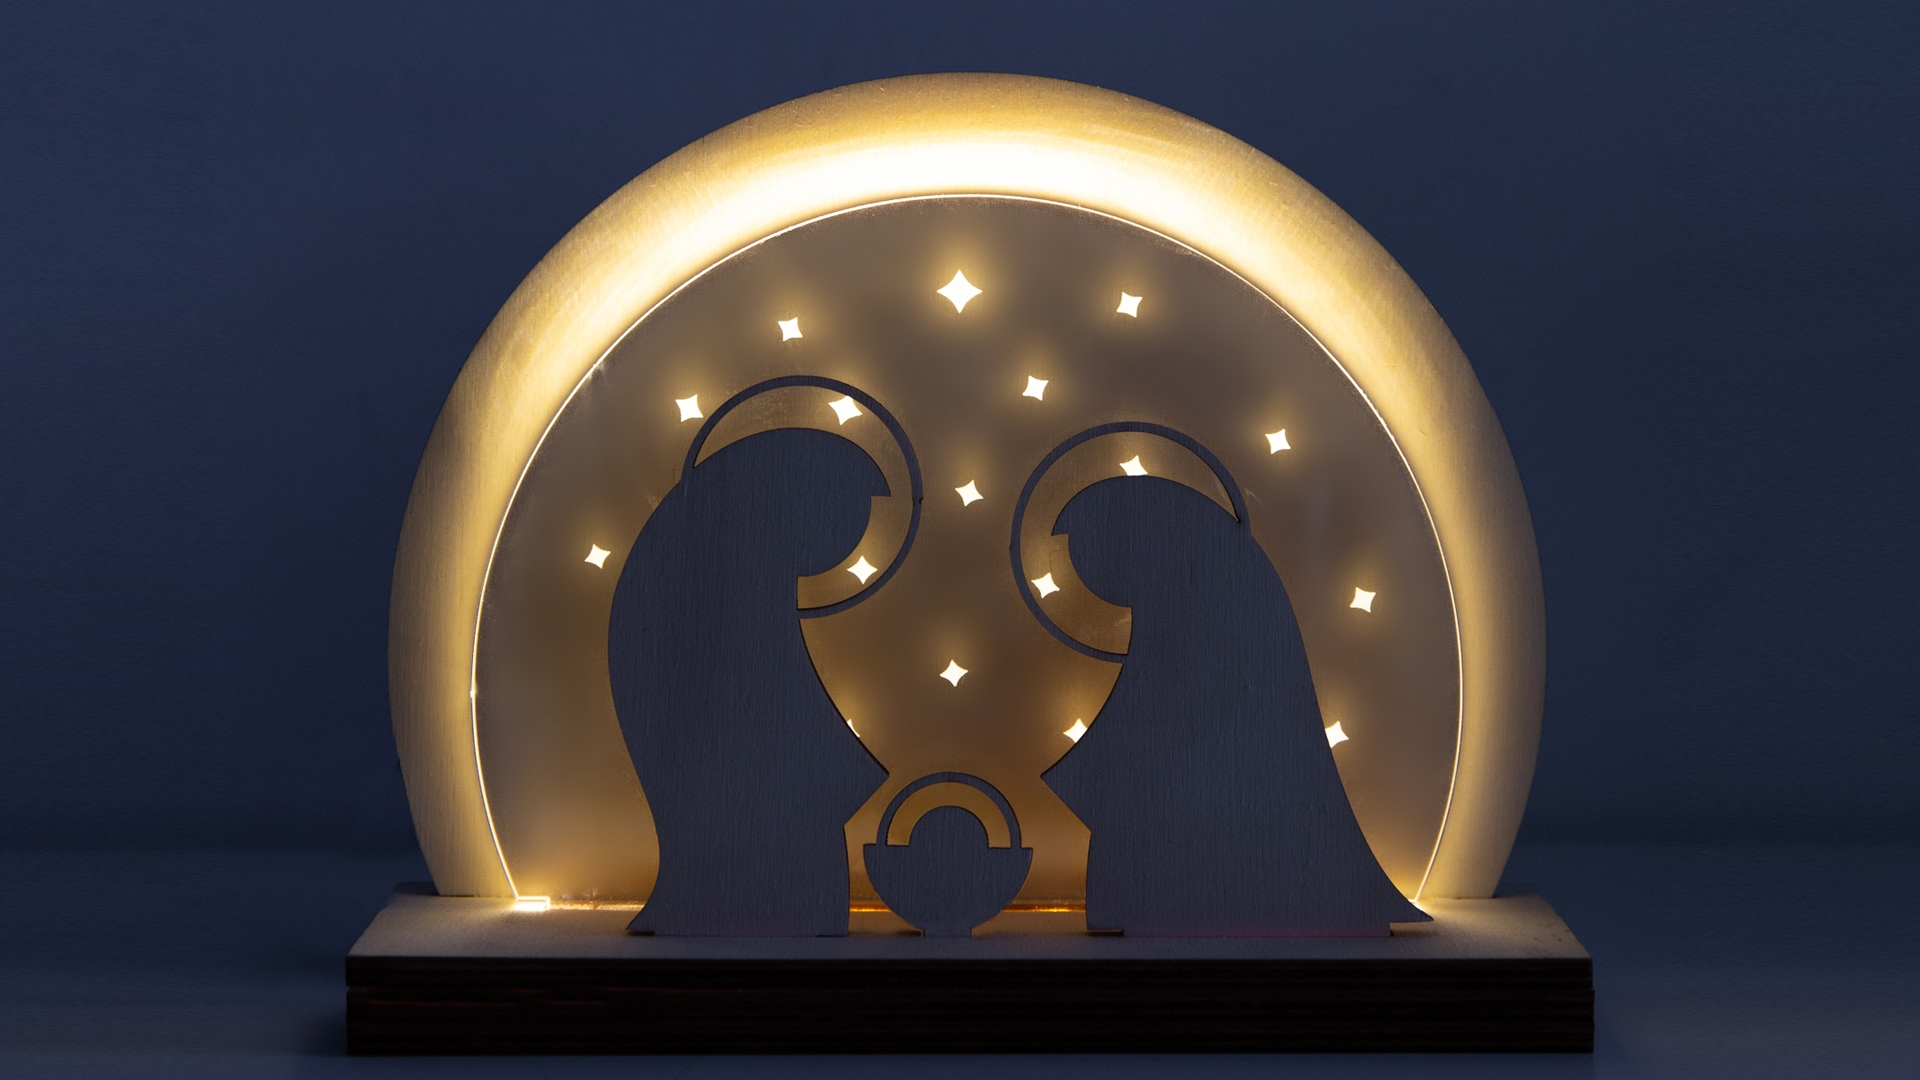 DESIGN AND DEVELOPMENT OF NATIVITY SCENE